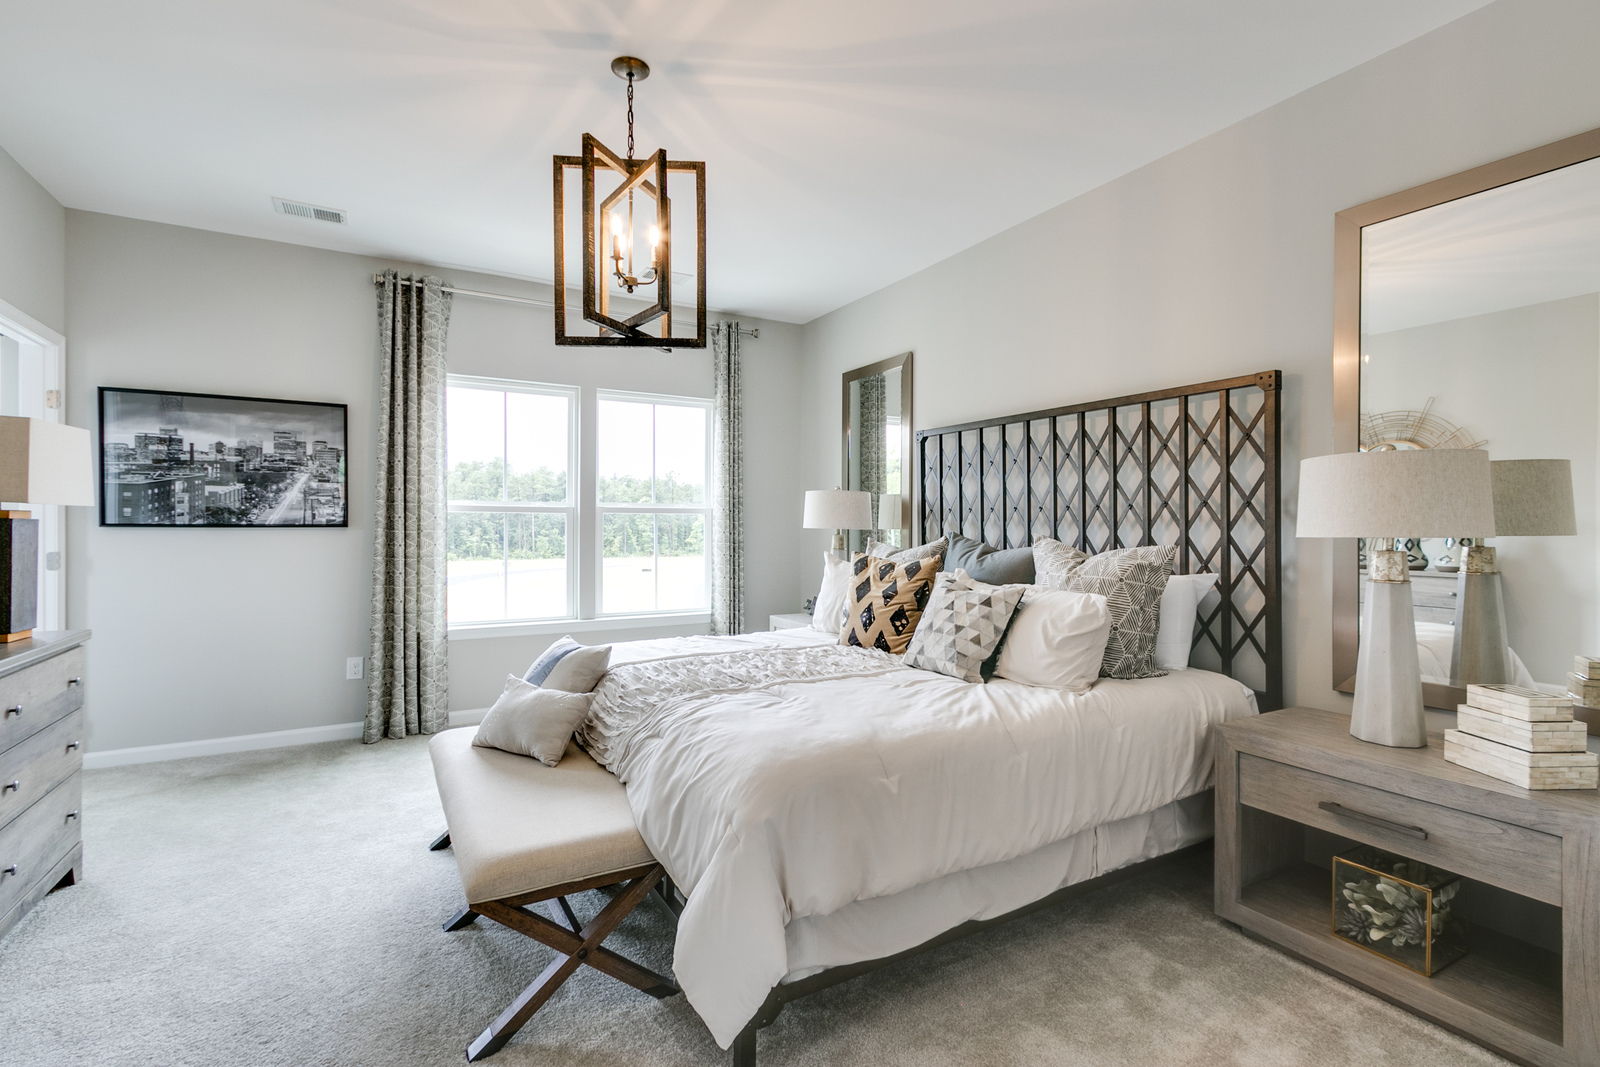 new strauss townhome model for sale at bryton square in huntersville nc. Black Bedroom Furniture Sets. Home Design Ideas